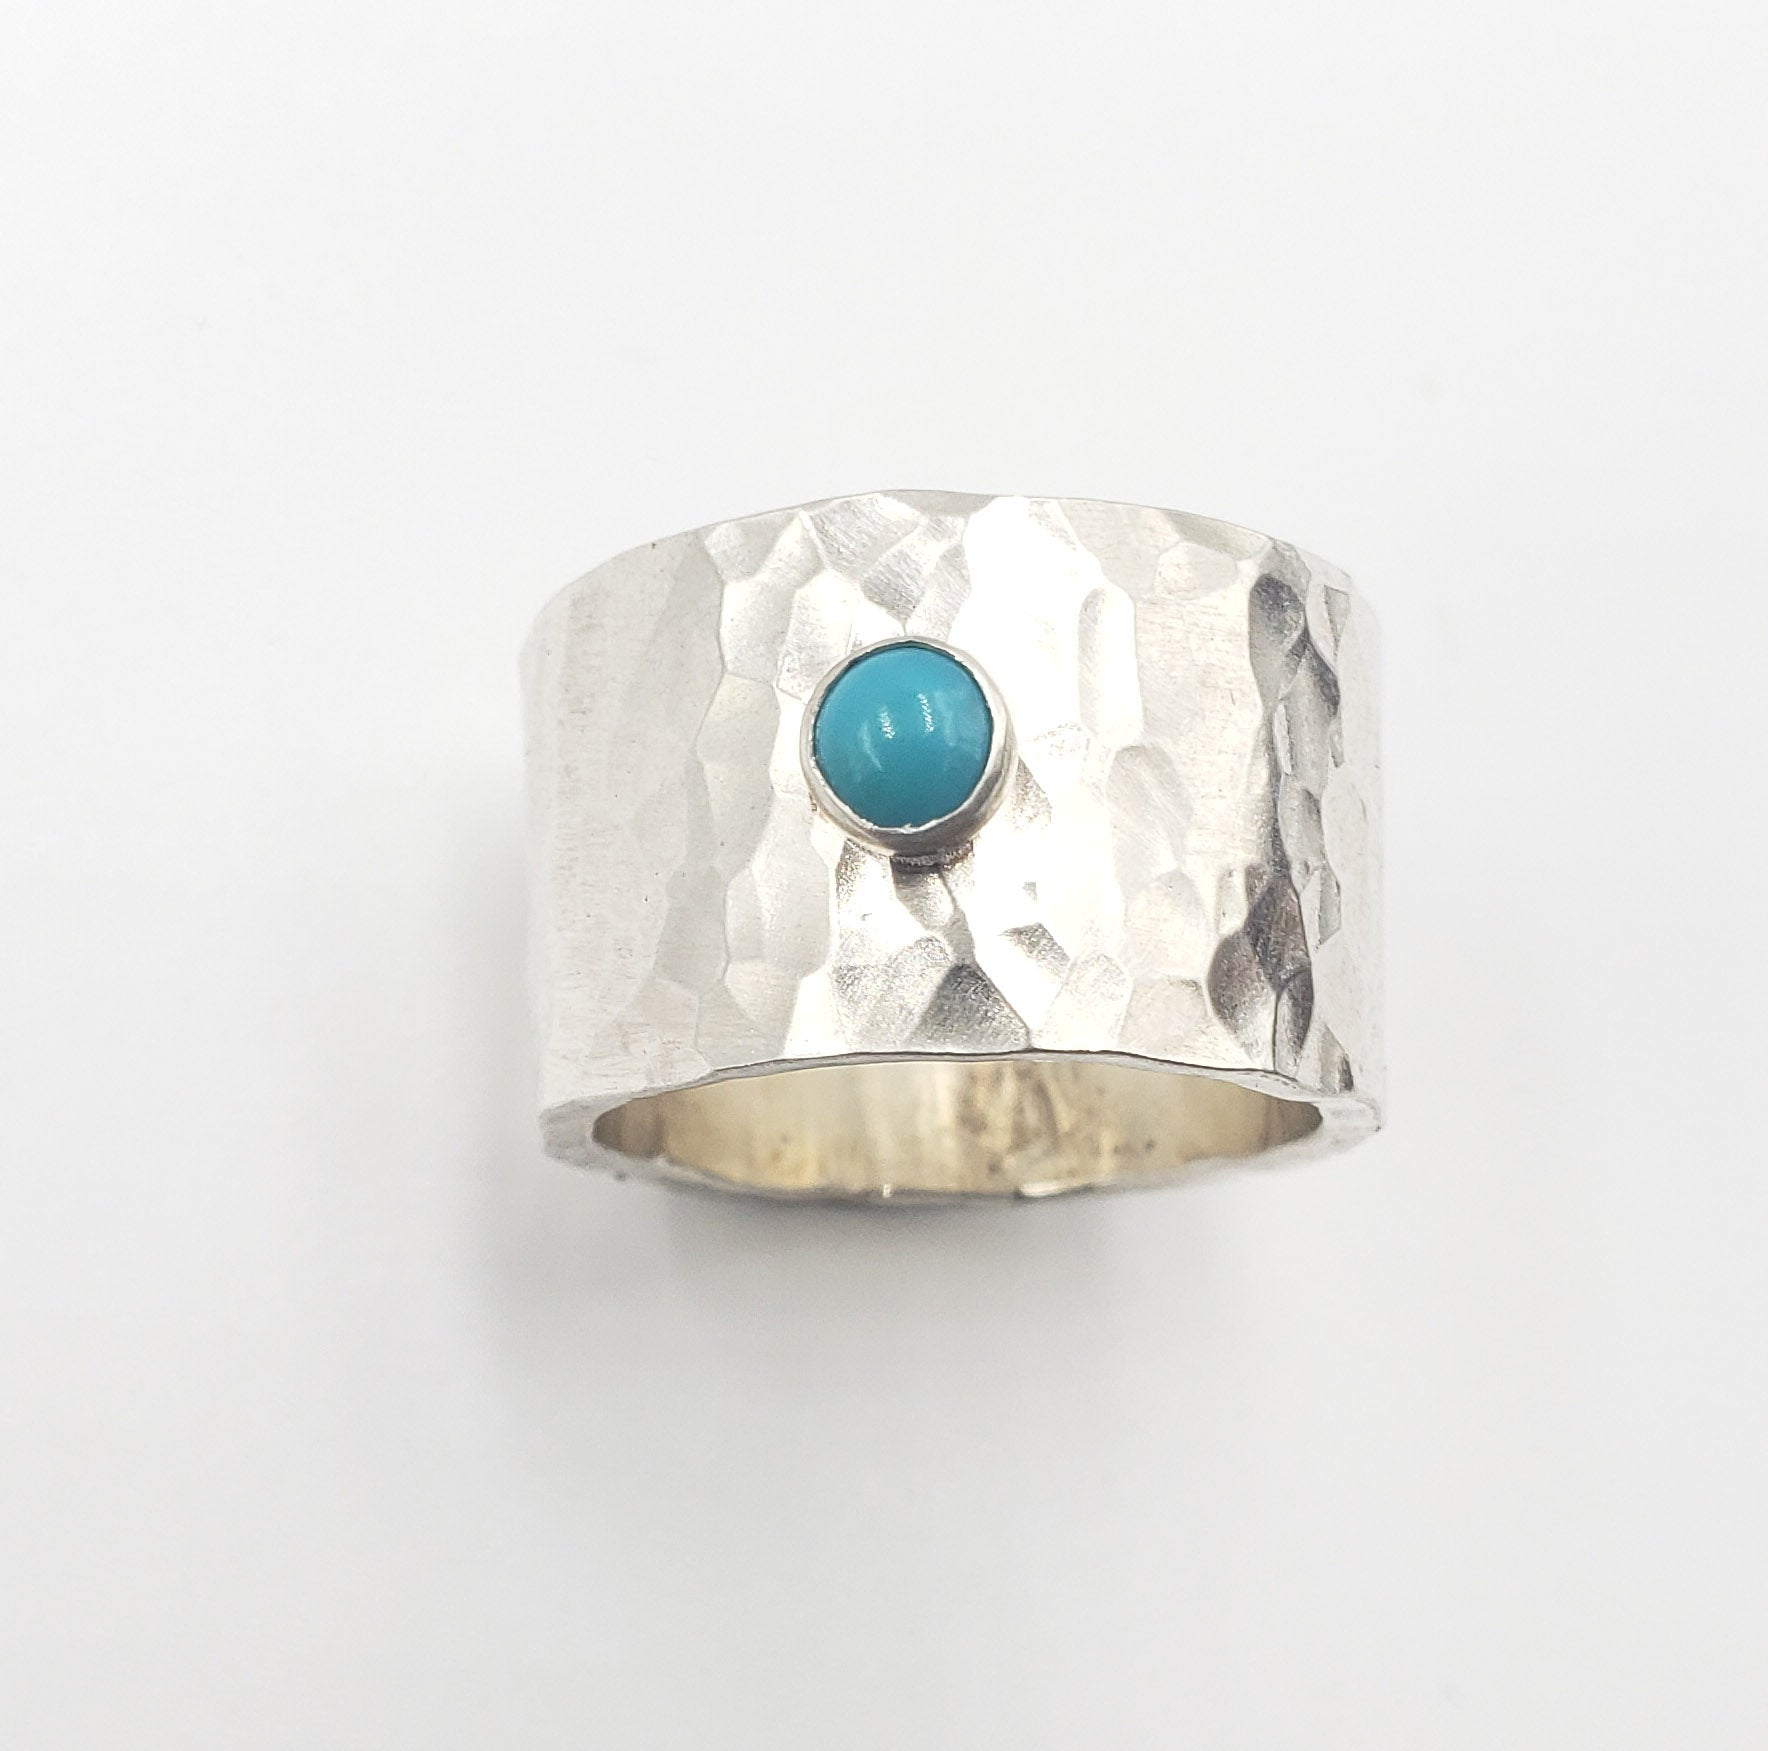 Hammered Cigar band with Turquoise